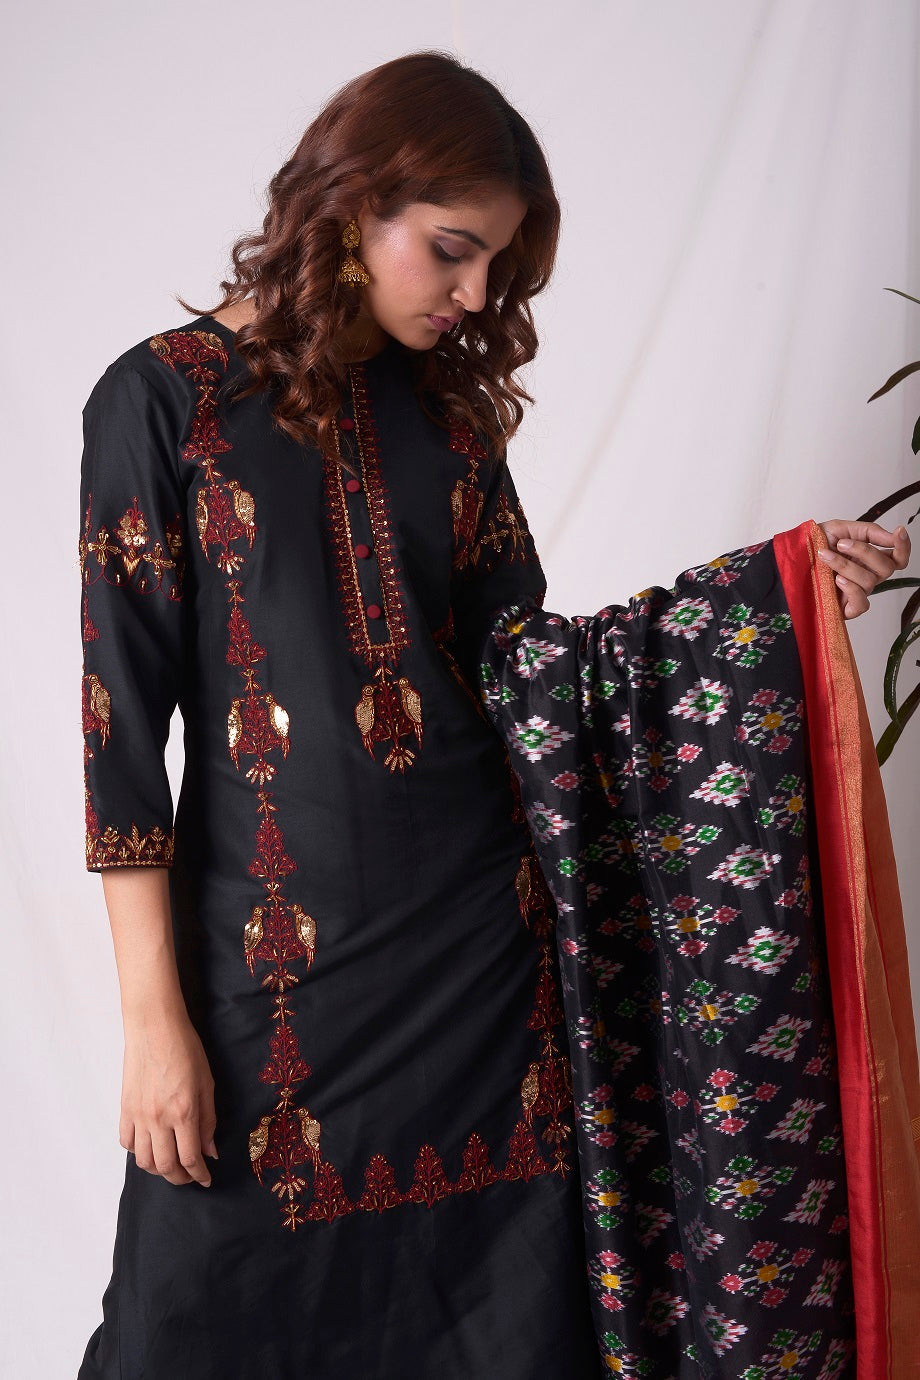 Buy black cotton silk suit online in USA. Suit has simple red  work. Be the talk of parties and weddings with exquisite designer gowns, Indian suits, Anarkali dresses, Indowestern dresses from Pure Elegance Indian clothing store in USA.Shop online now.-closeup2